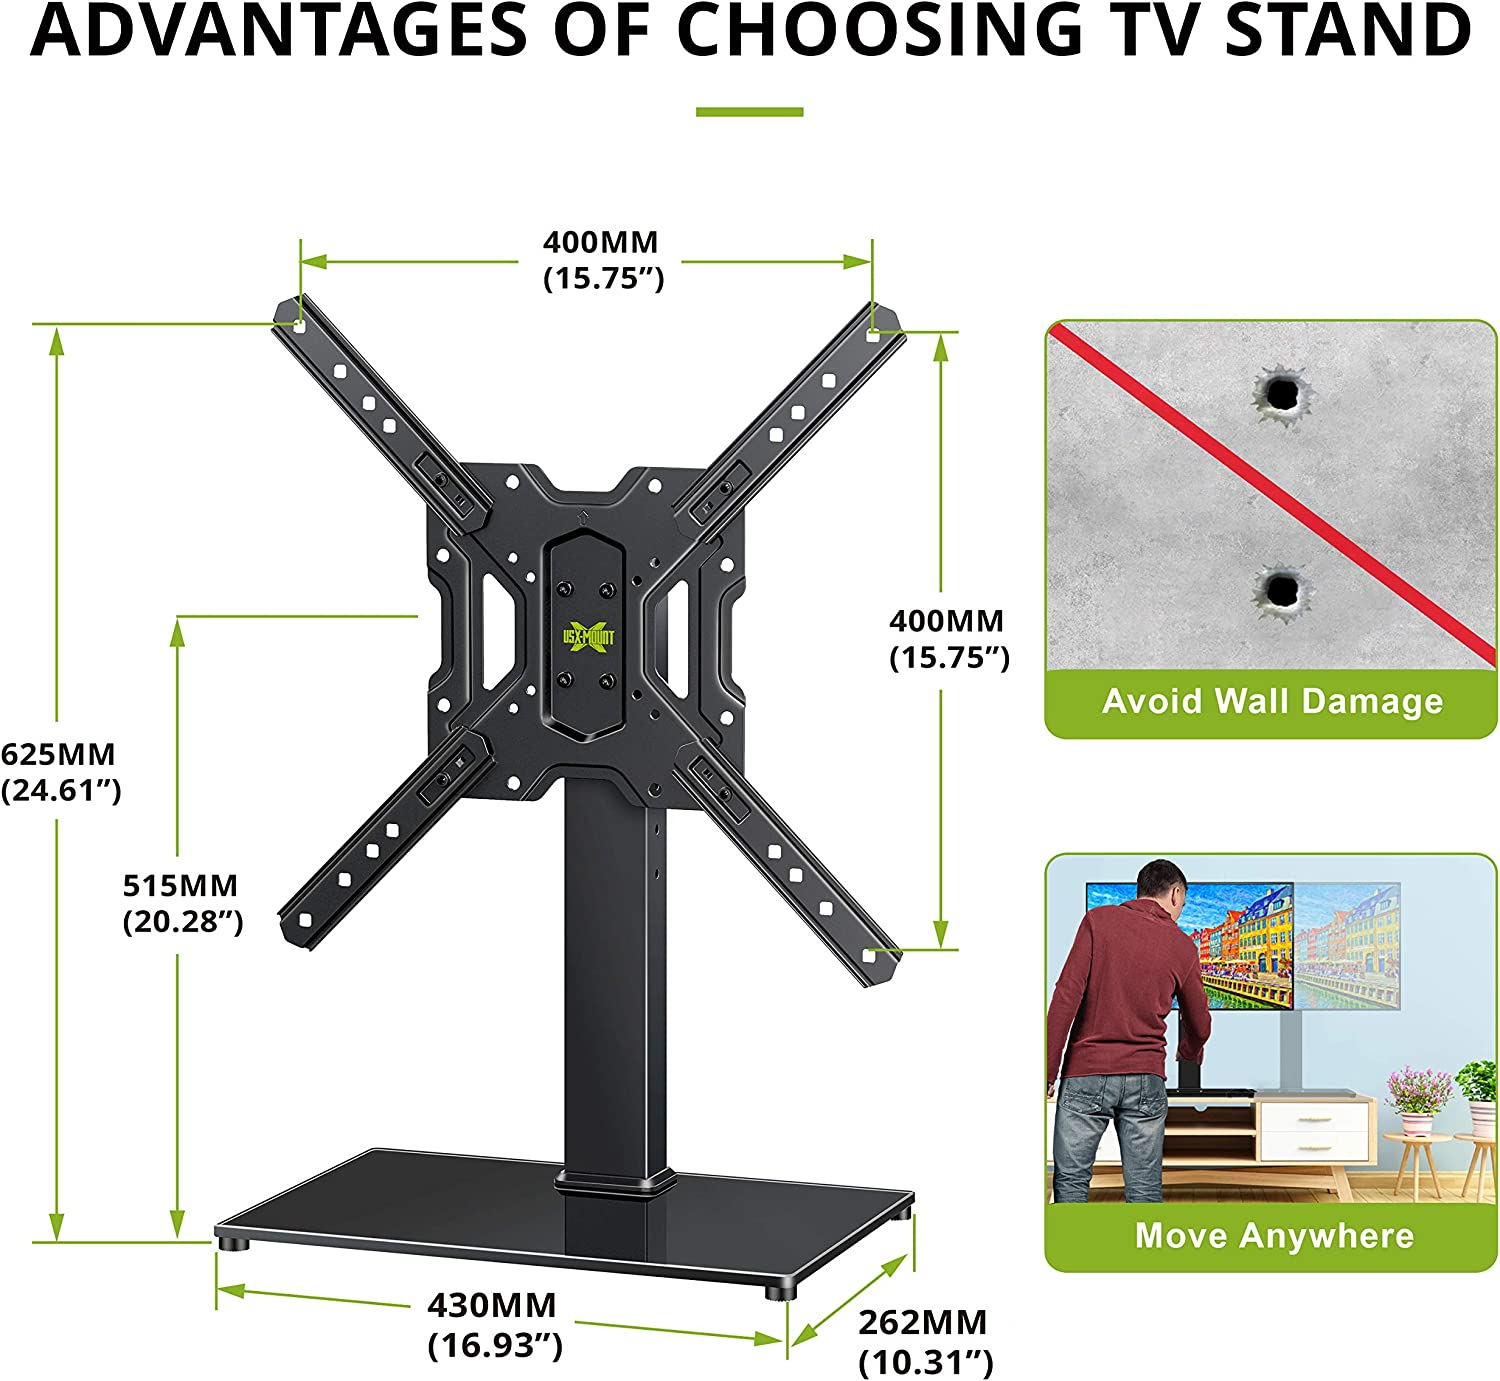 VESA 400x400mm Height Adjustable Tabletop TV Base//Stand Mount with Tempered Glass Base /& Cable Management USX MOUNT Universal Swivel TV Stand for 26-55 Inch LCD LED Flat Screen TVs